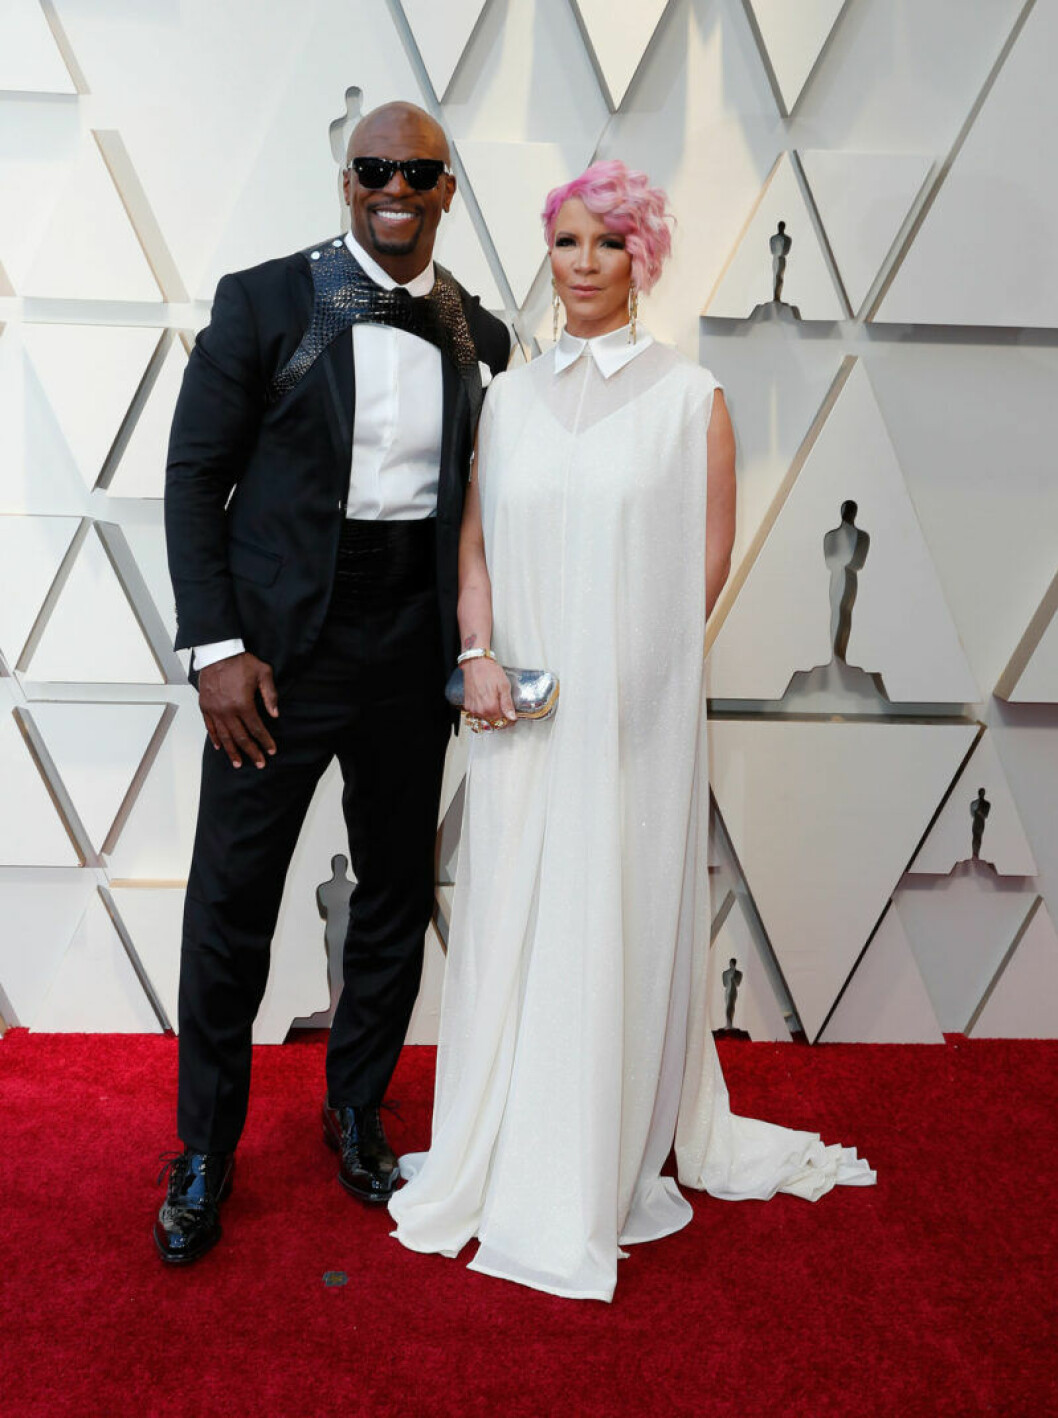 Terry Crews och Rebecca King på Oscarsgalan 2019